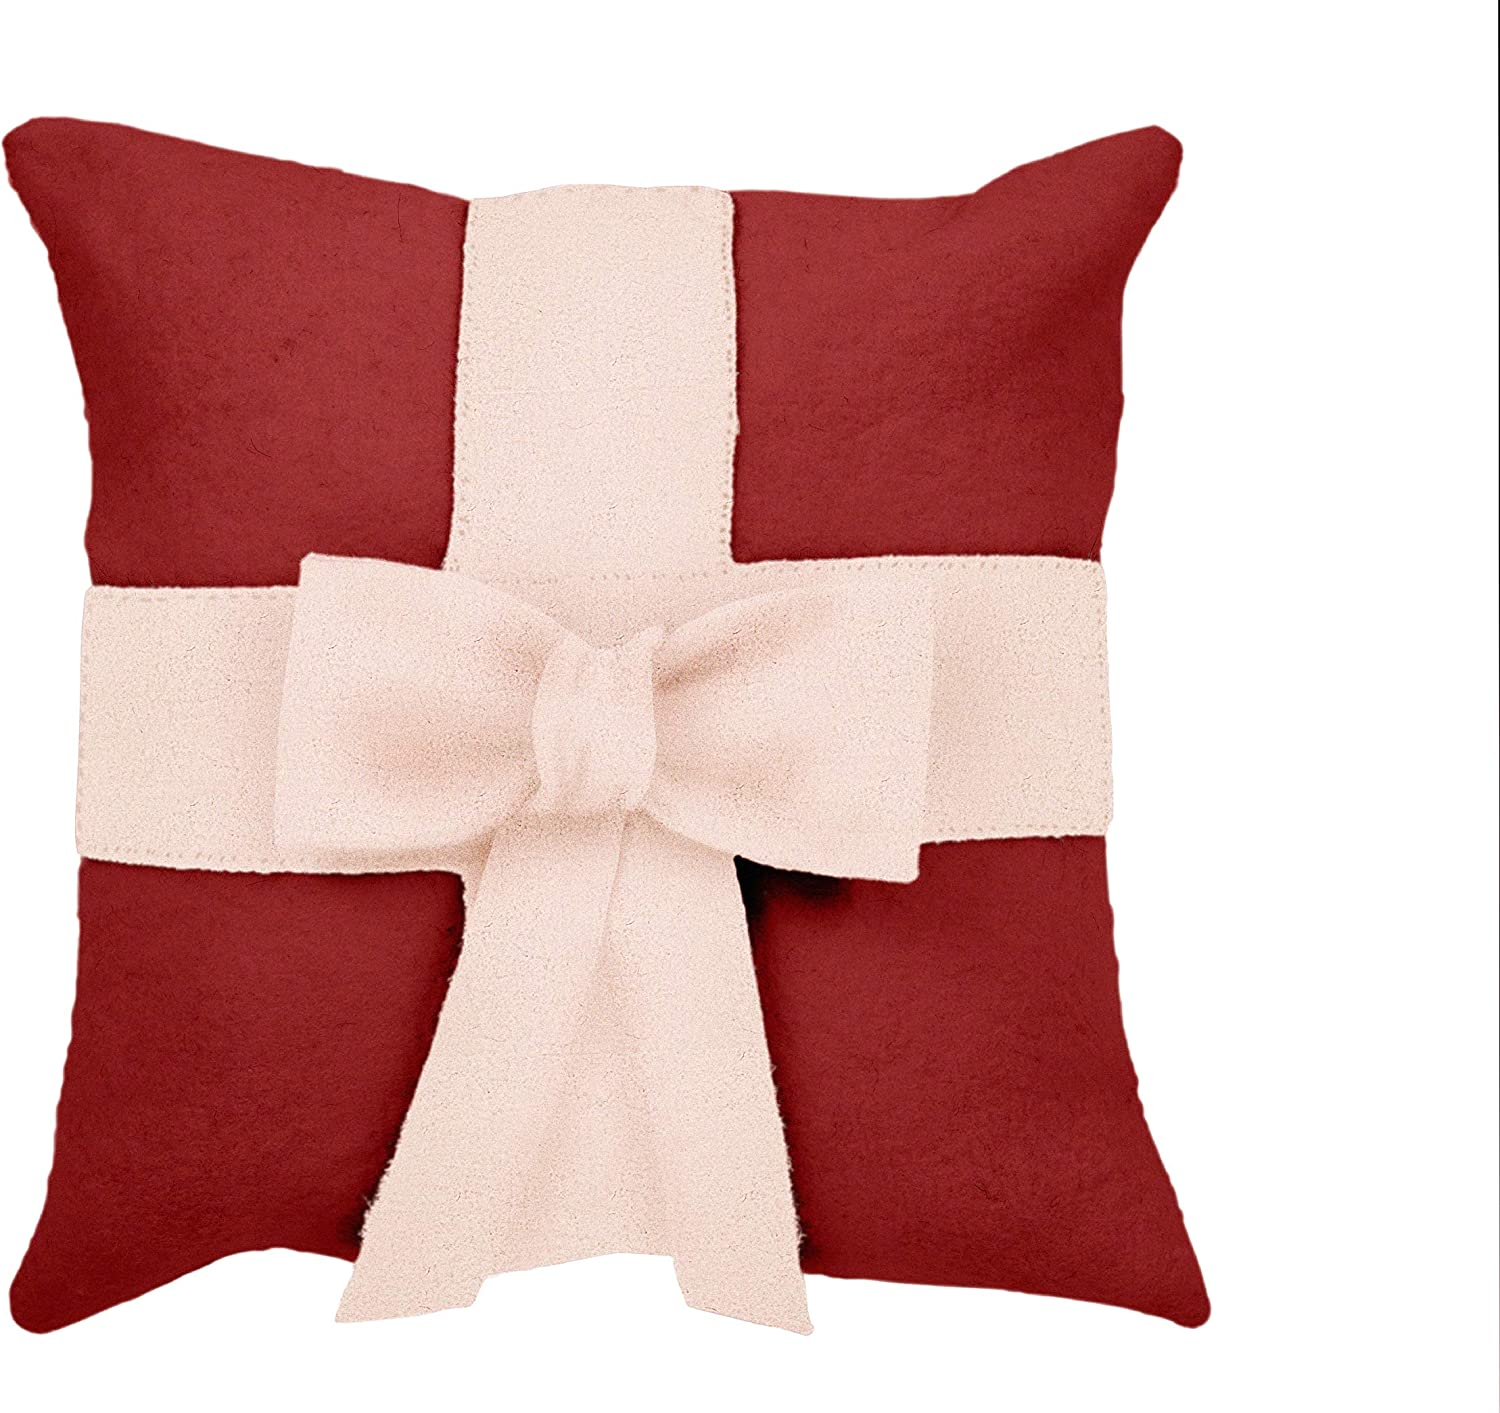 Amazon Com Arcadia Home Cream Bow On Red Christmas Pillow In Hand Felted Wool 20 Decorative Pillow Home Kitchen